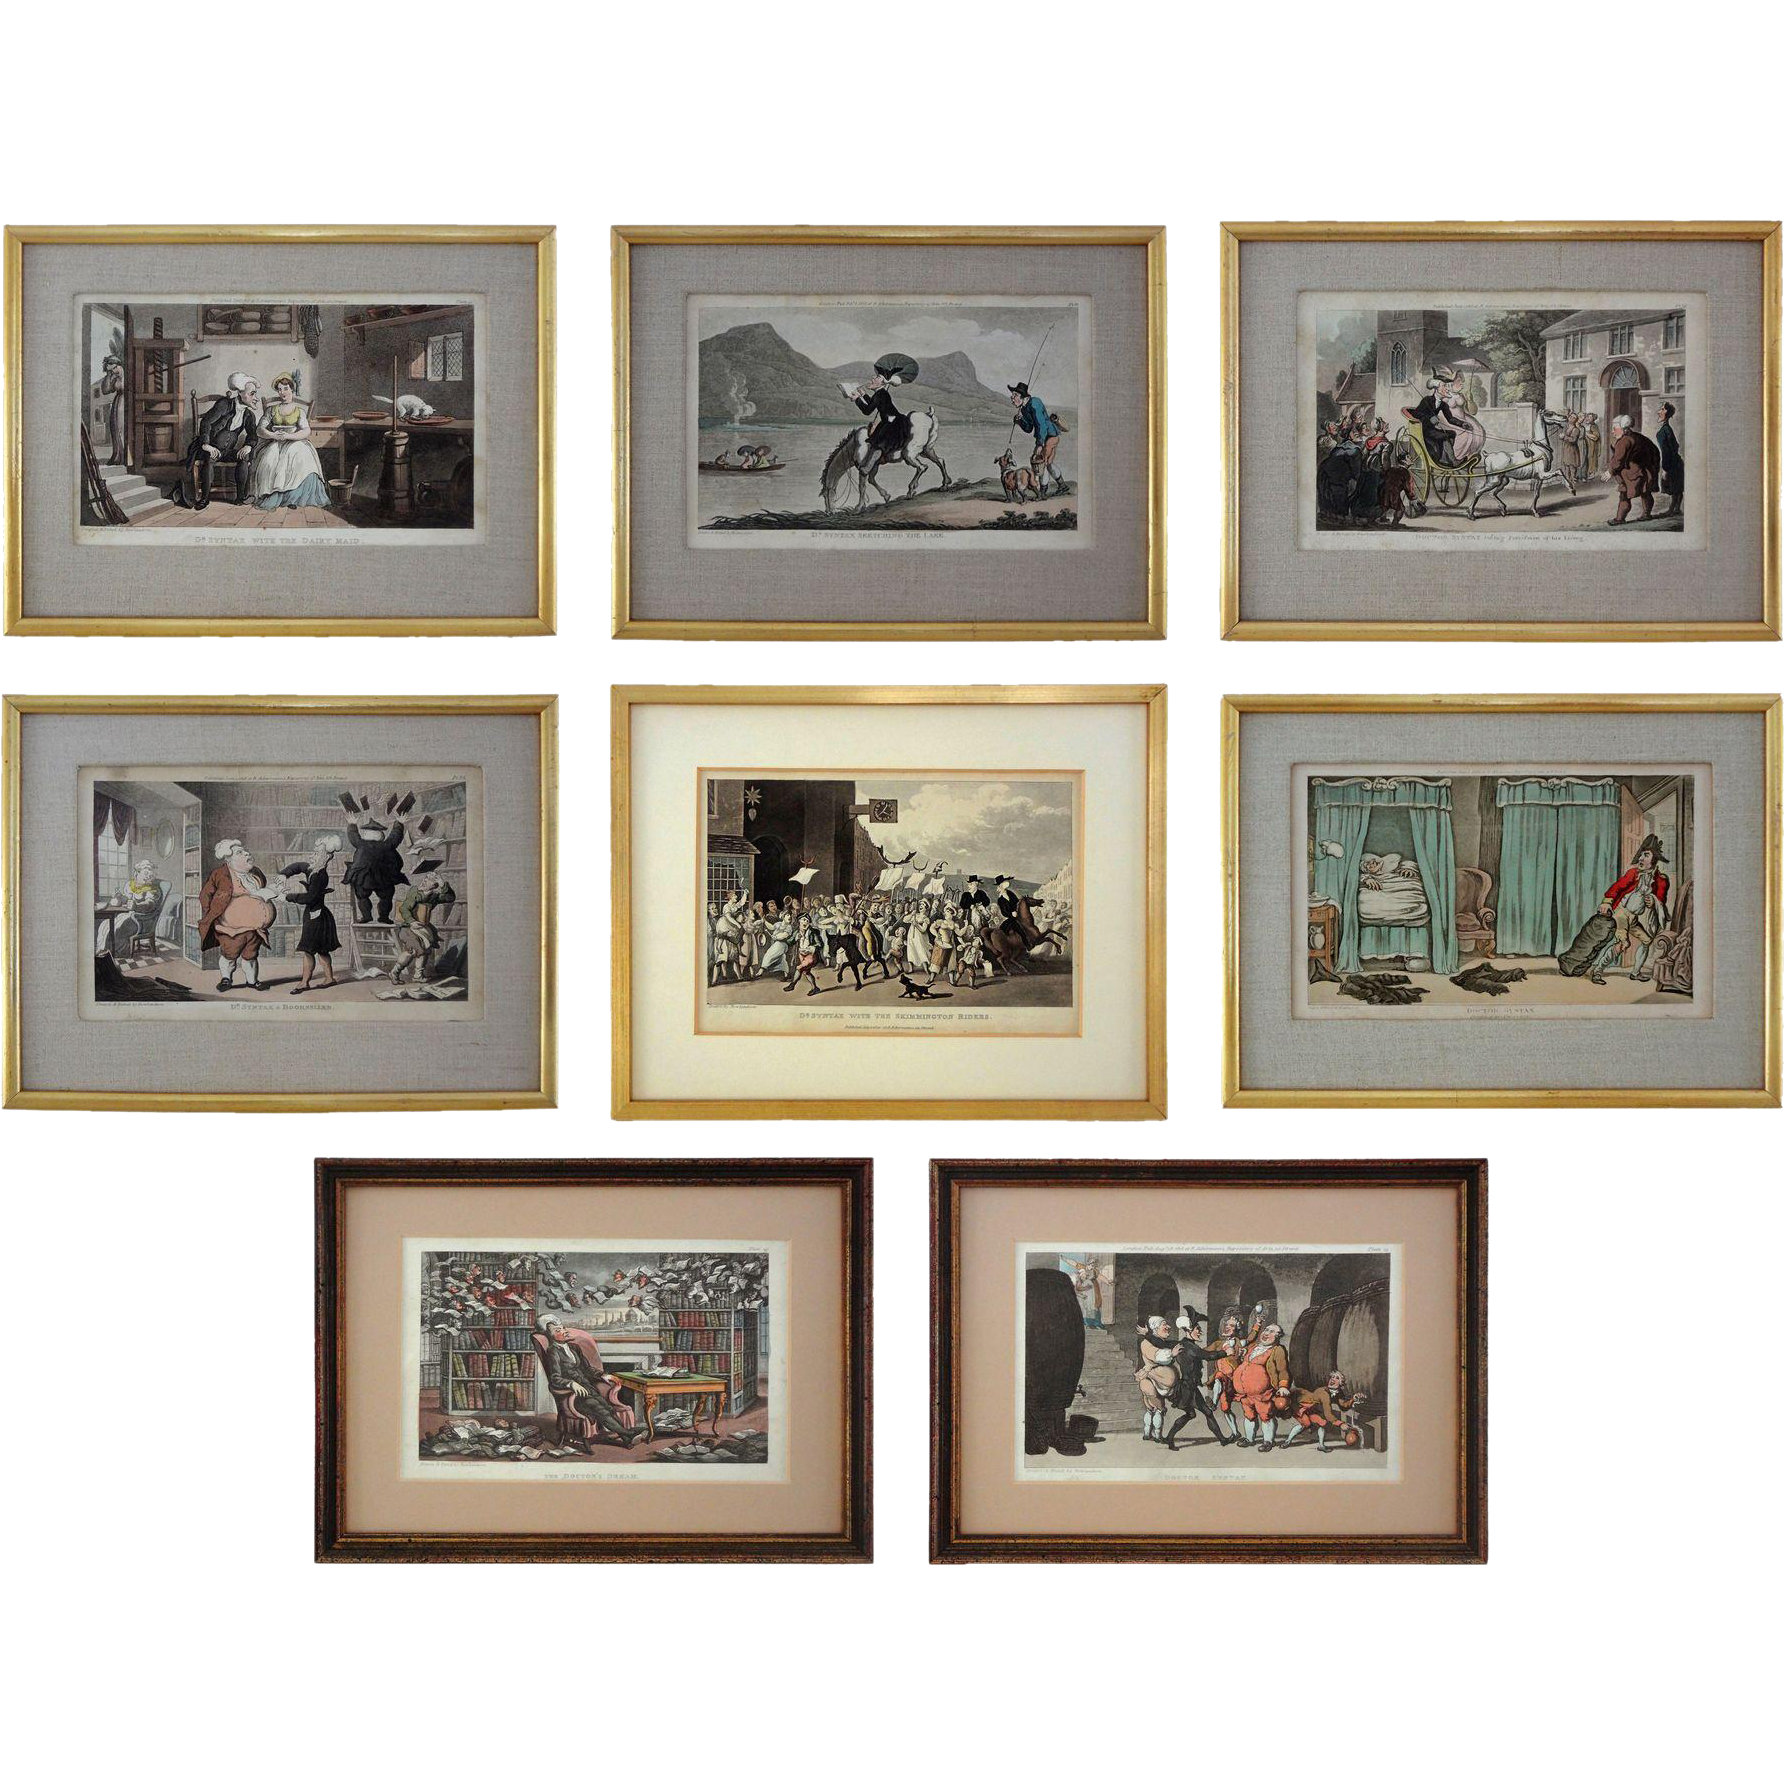 Set 8 Early English Lithographs Rowlandson Dr. Syntax Caricatures - c. 1820, England